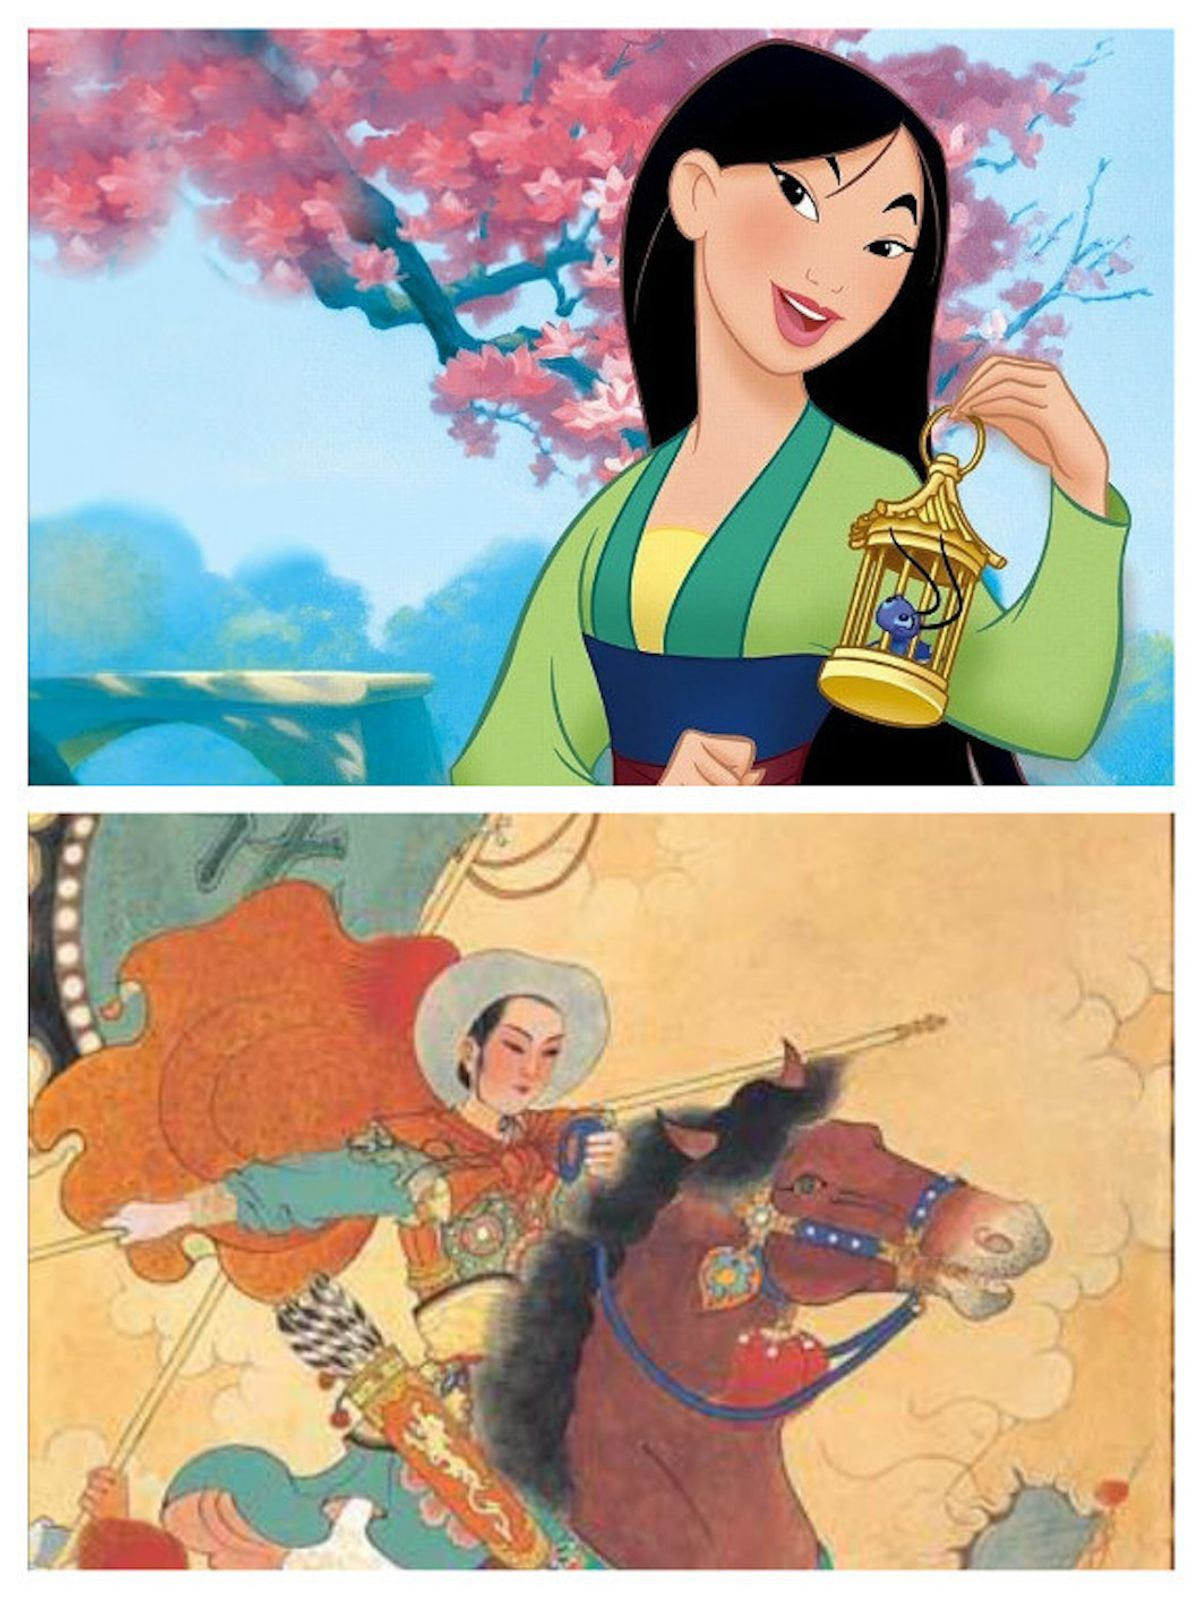 6 Life Lessons We Can Learn from 'Mulan'